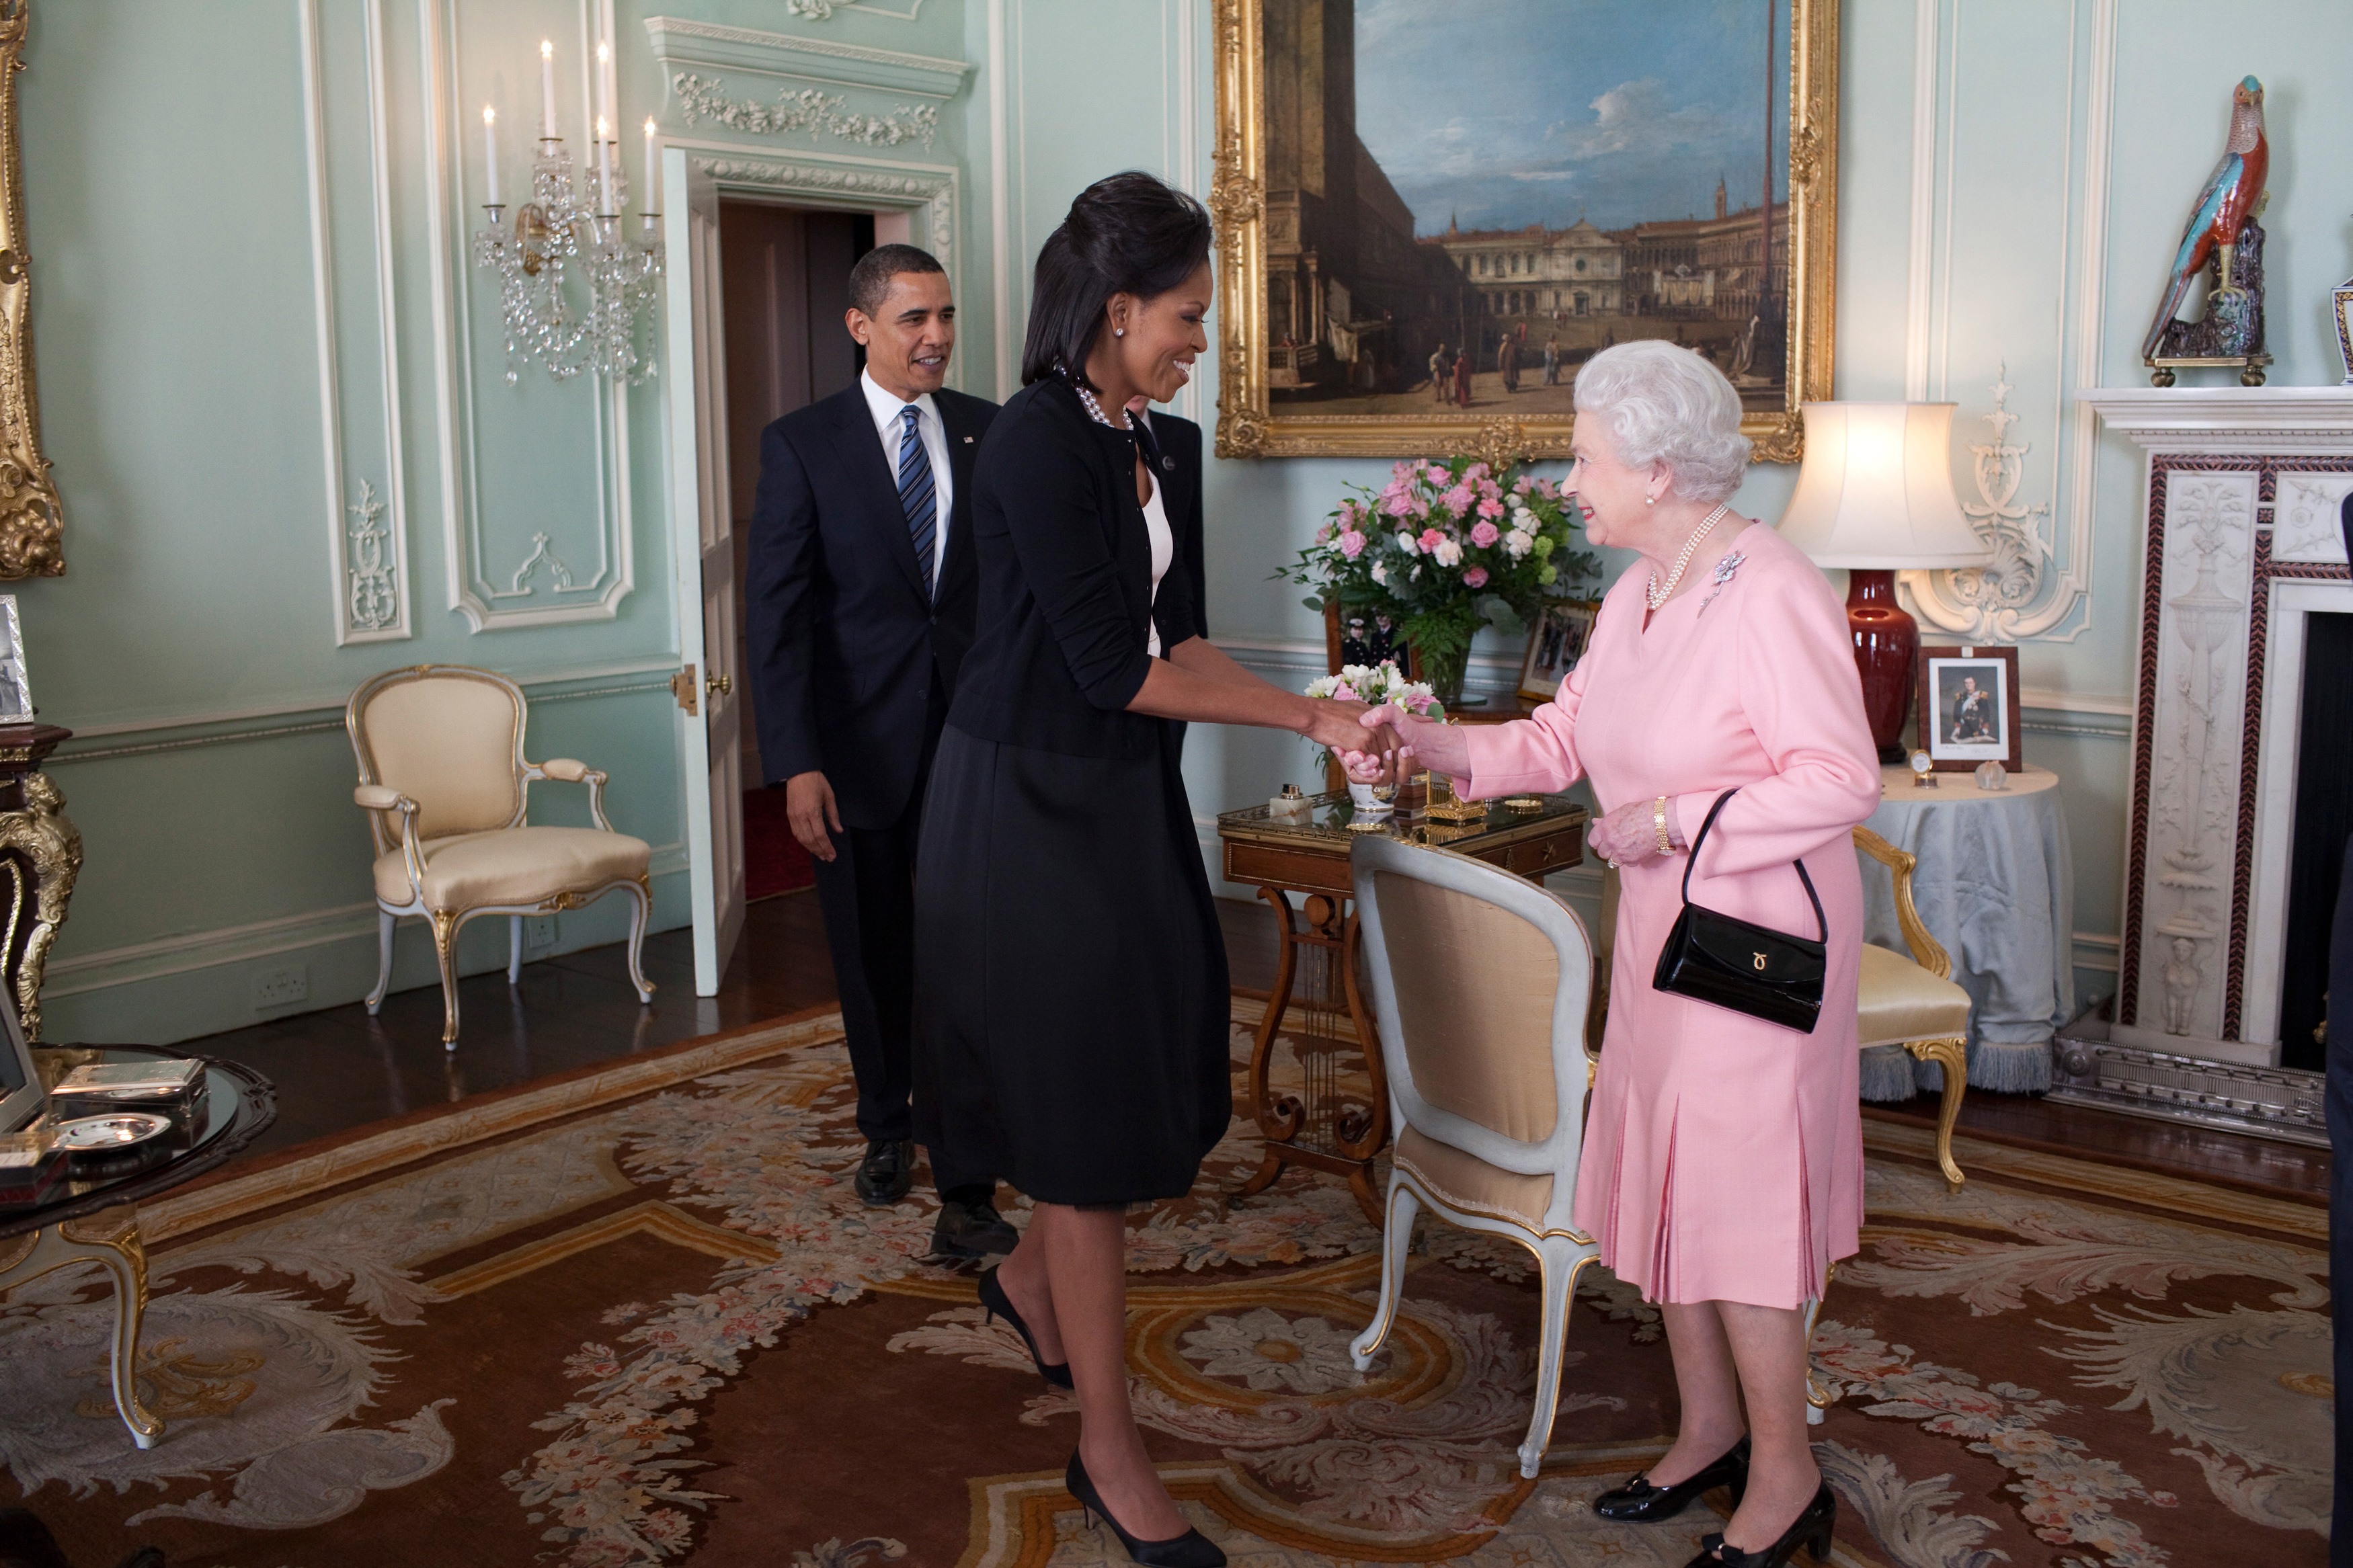 File:Barack Obama Michelle Obama Queen Elizabeth II Buckingham Palace